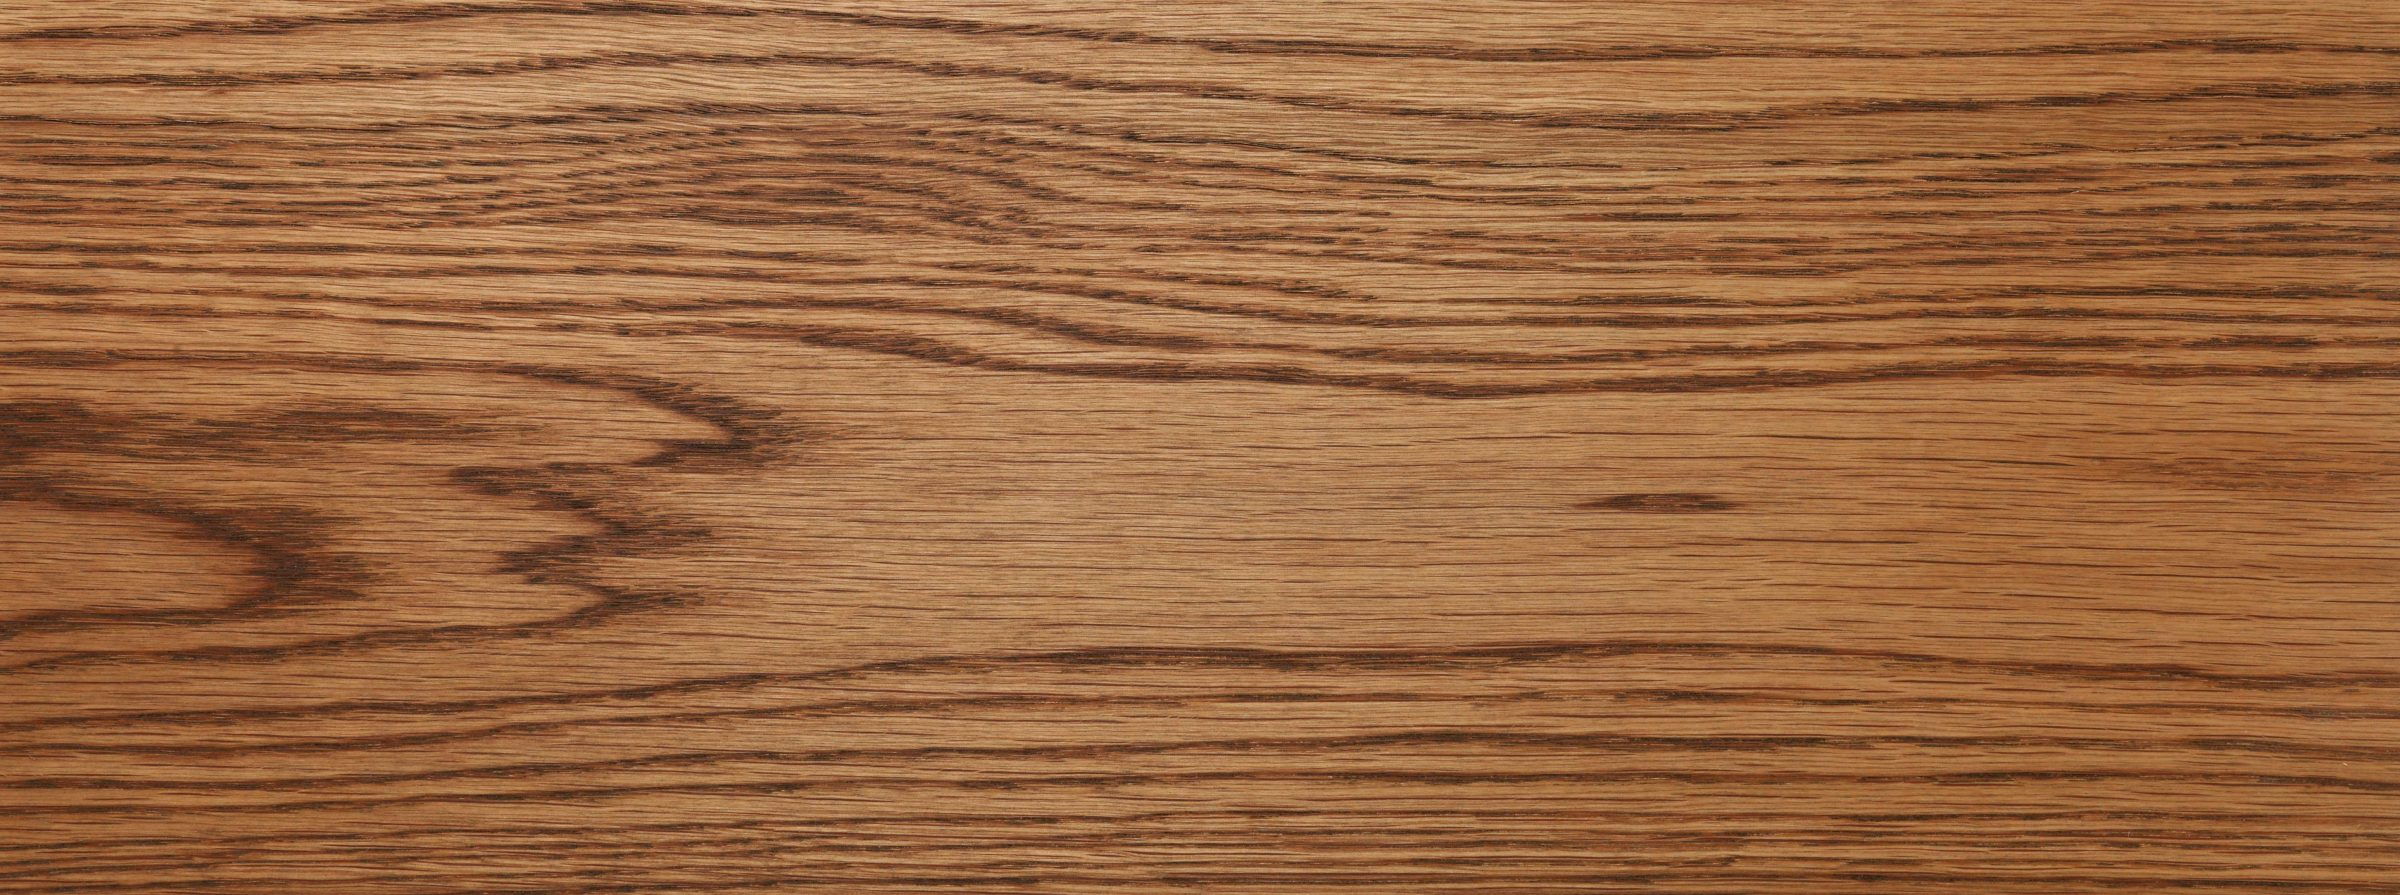 Oak 20mm engineered board, Castle Brown, 1sqm pack